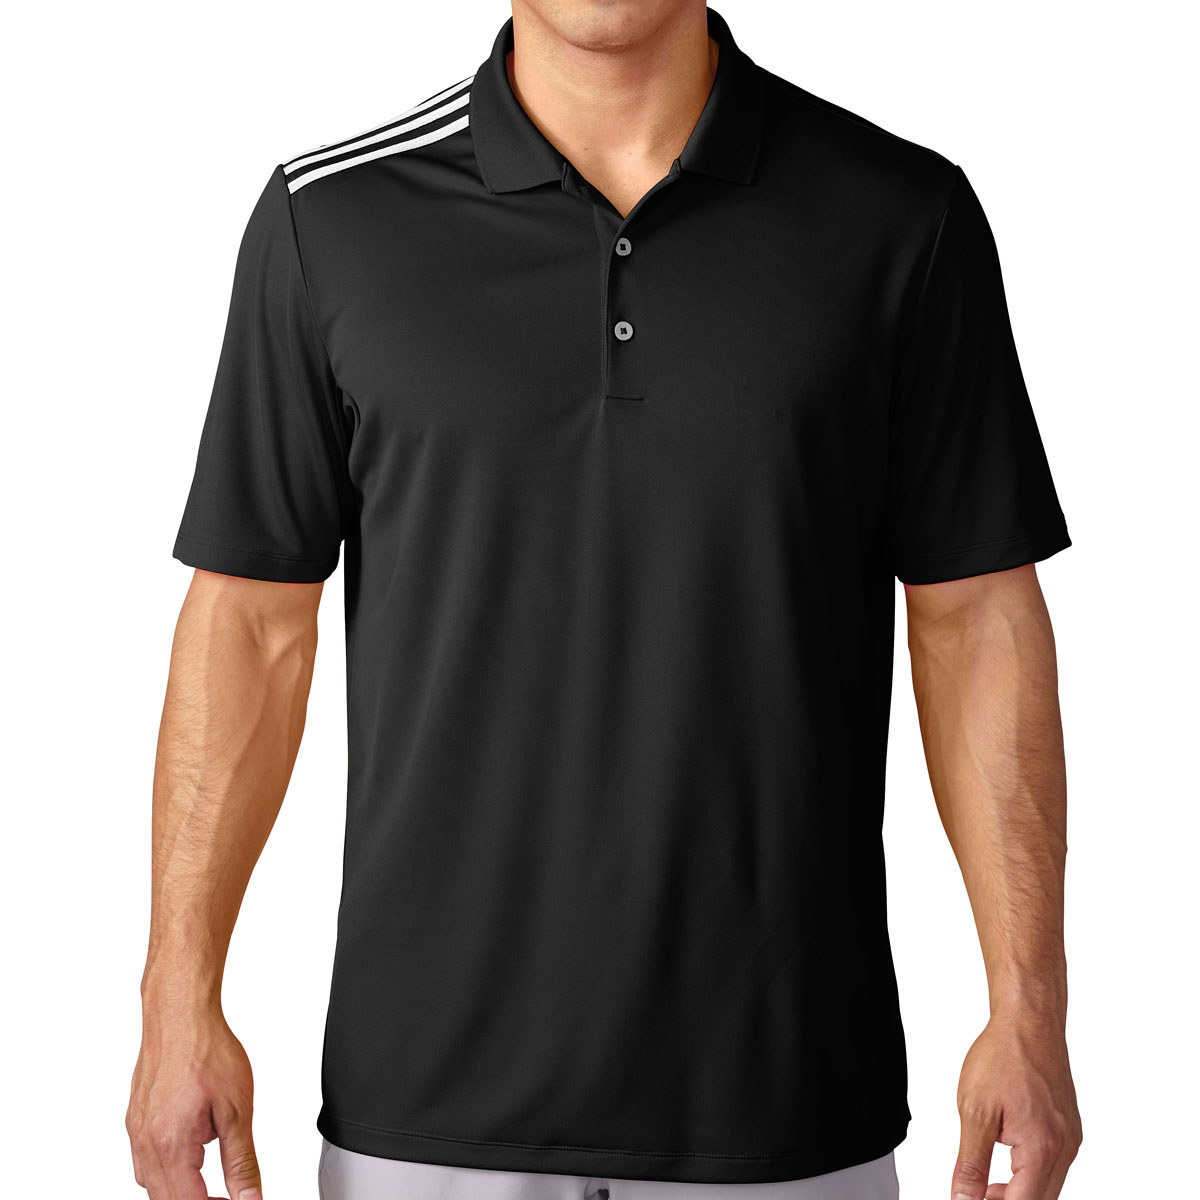 Adidas golf 2016 mens climacool 3 stripes performance polo for Men s performance polo shirts